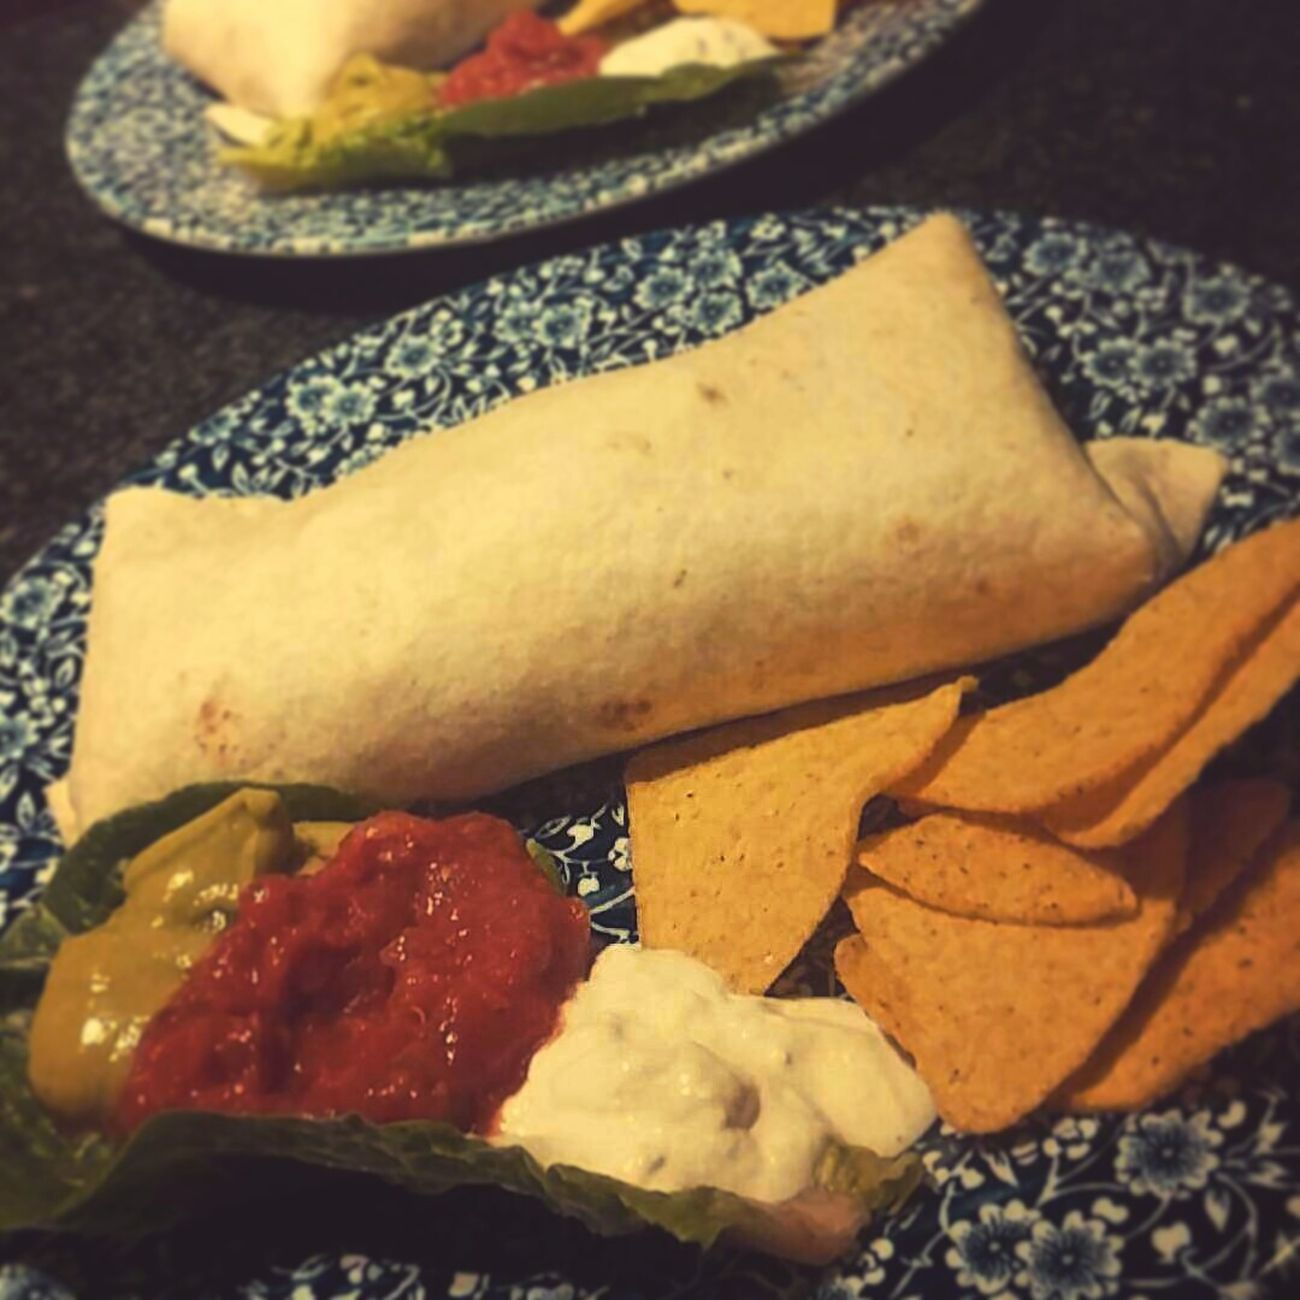 Chicken Burrito Massive Burritos Burrito Time Chips Nachos J20 Chickens Salsa Tortilla Food